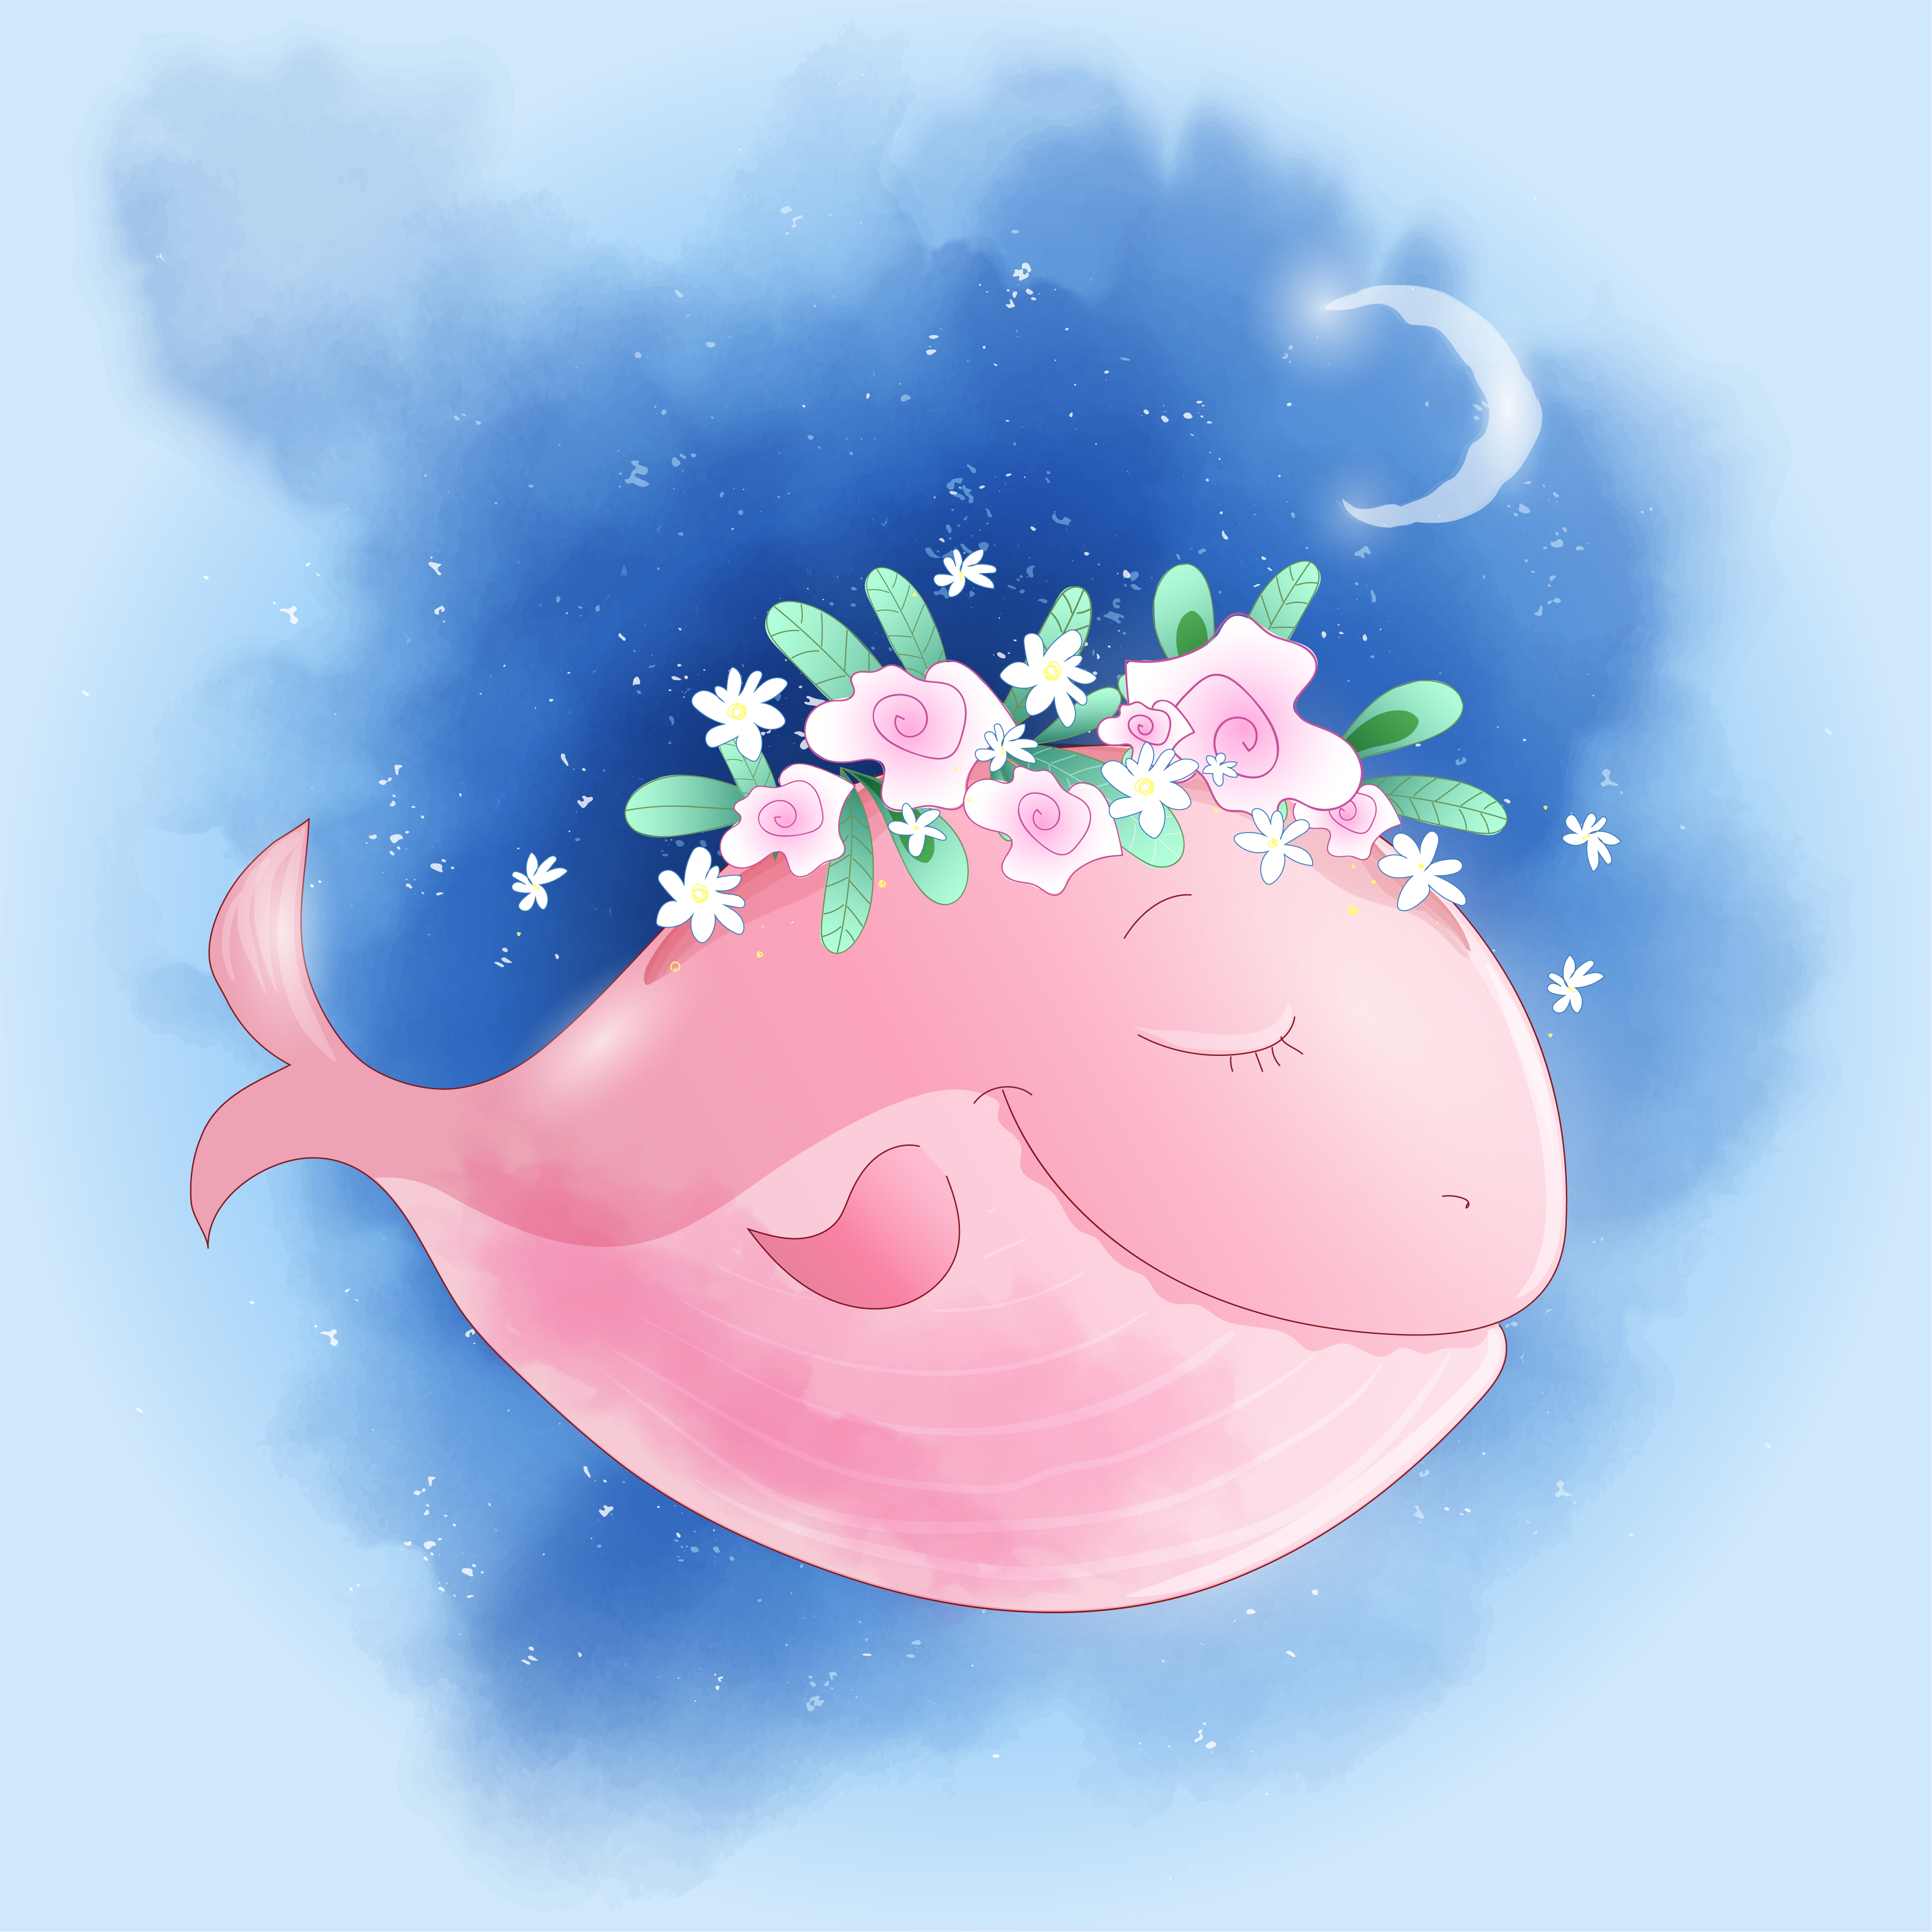 Cute Cartoon Whale In The Sky With Roses House Postcard Print Poster For The Children S Room Download Free Vectors Clipart Graphics Vector Art